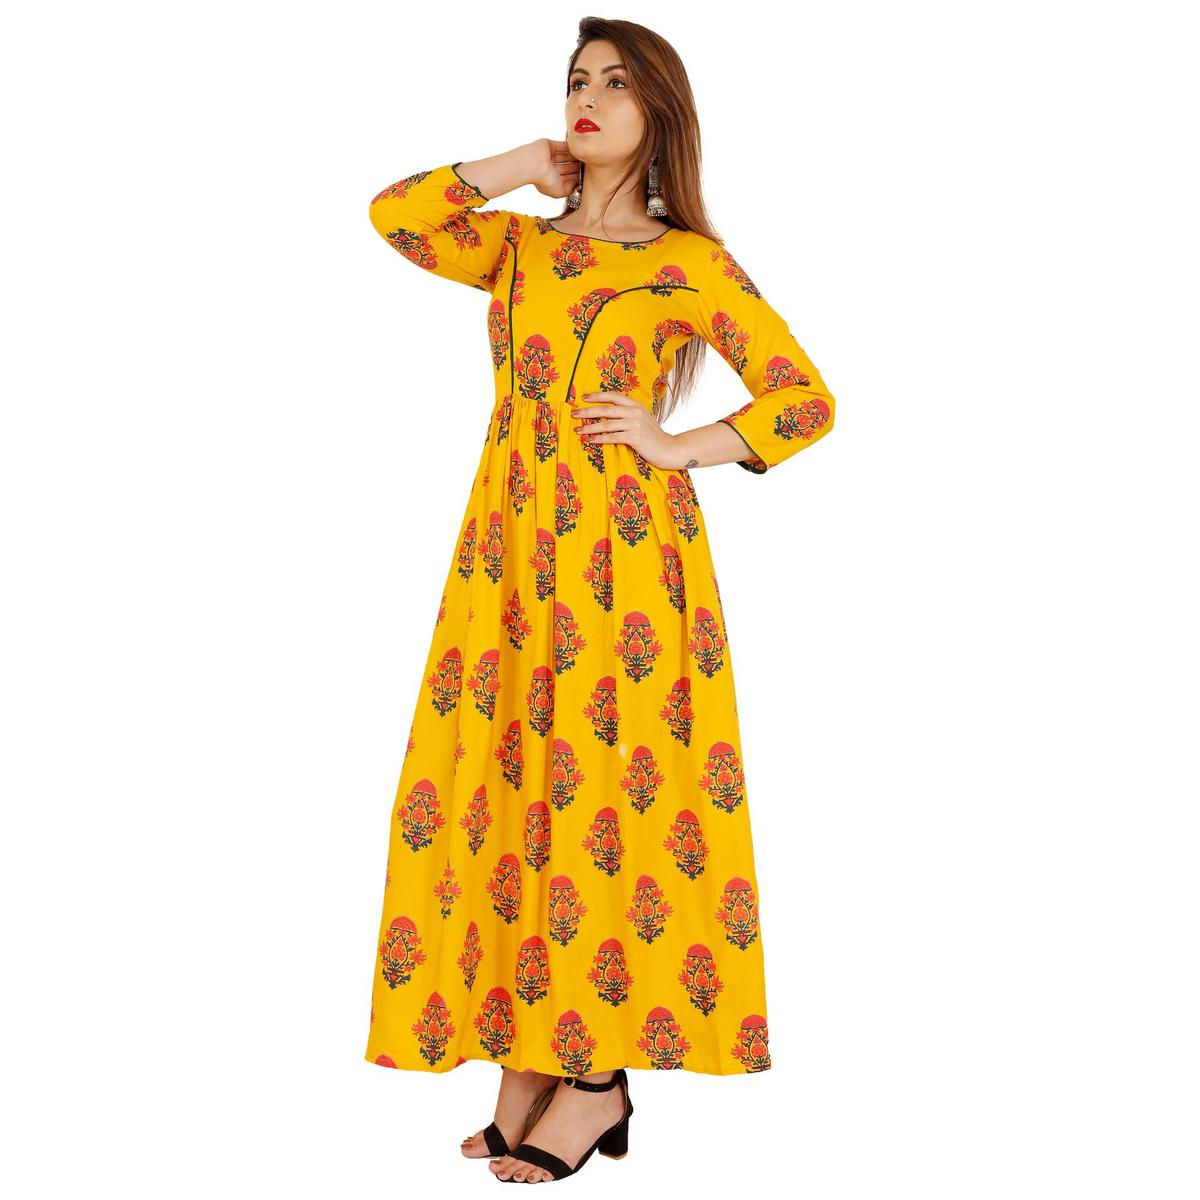 Attractive Mustard Yellow Colored Casual Wear Floral Printed Rayon Kurti